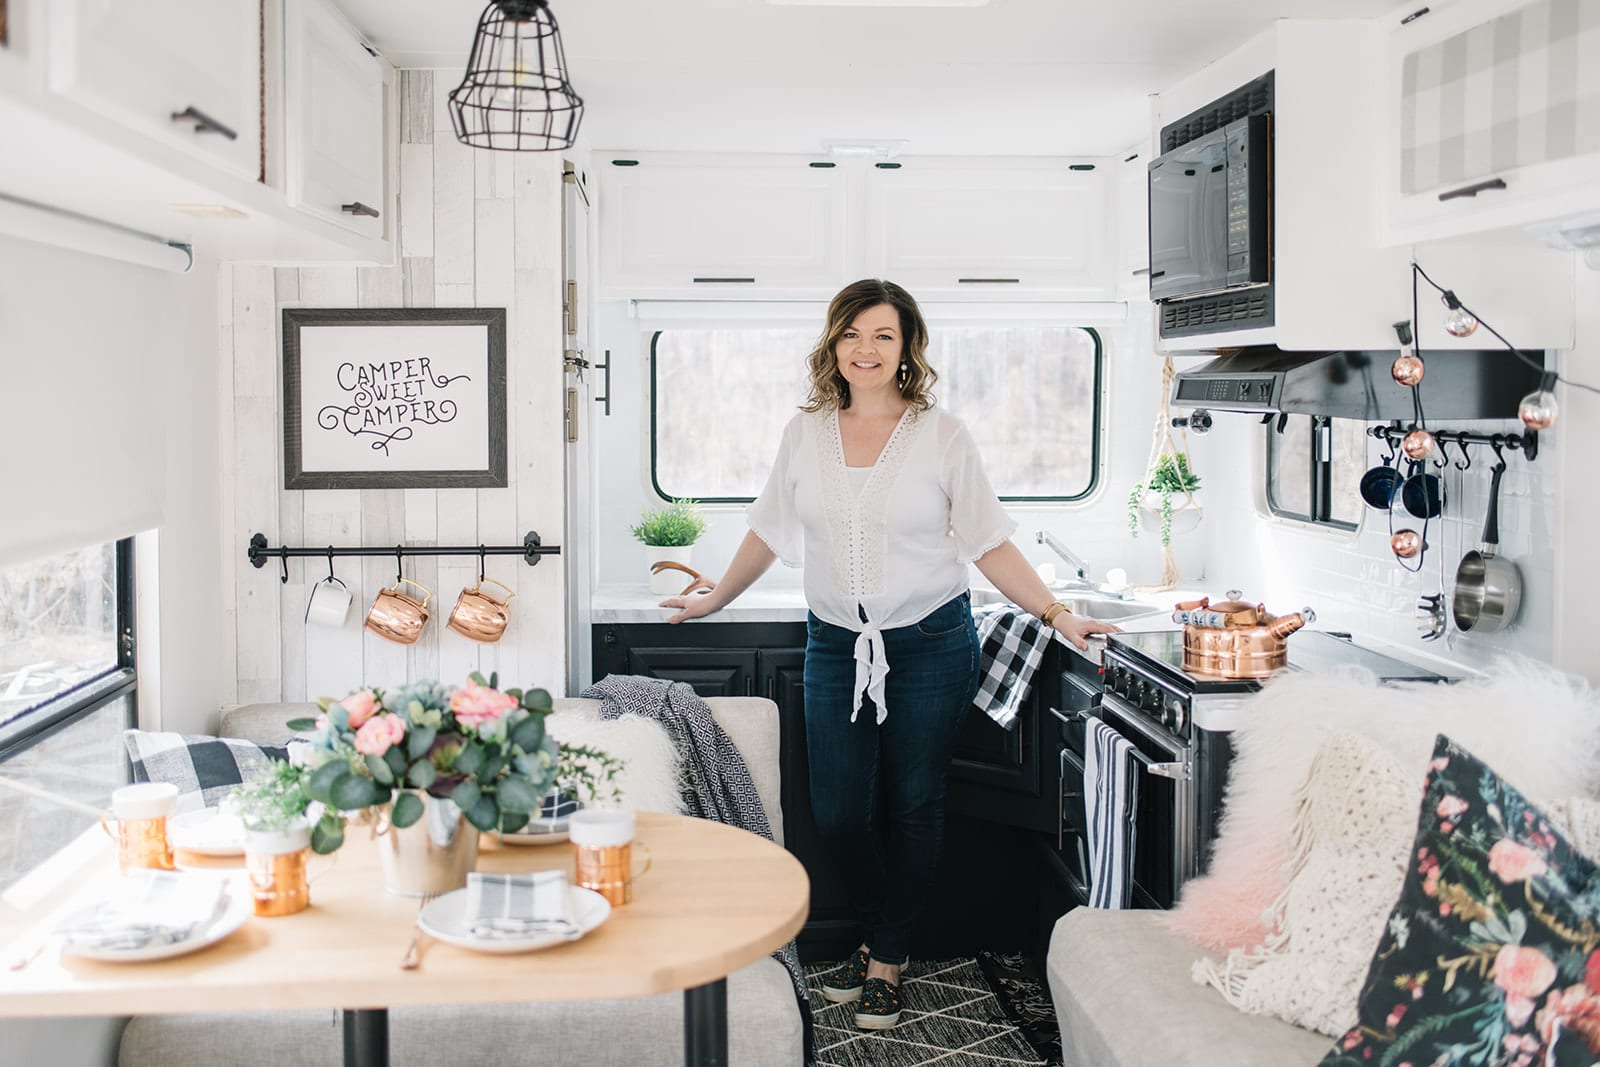 Rv Renovation On A Budget From Start To Finish The Diy Mommy